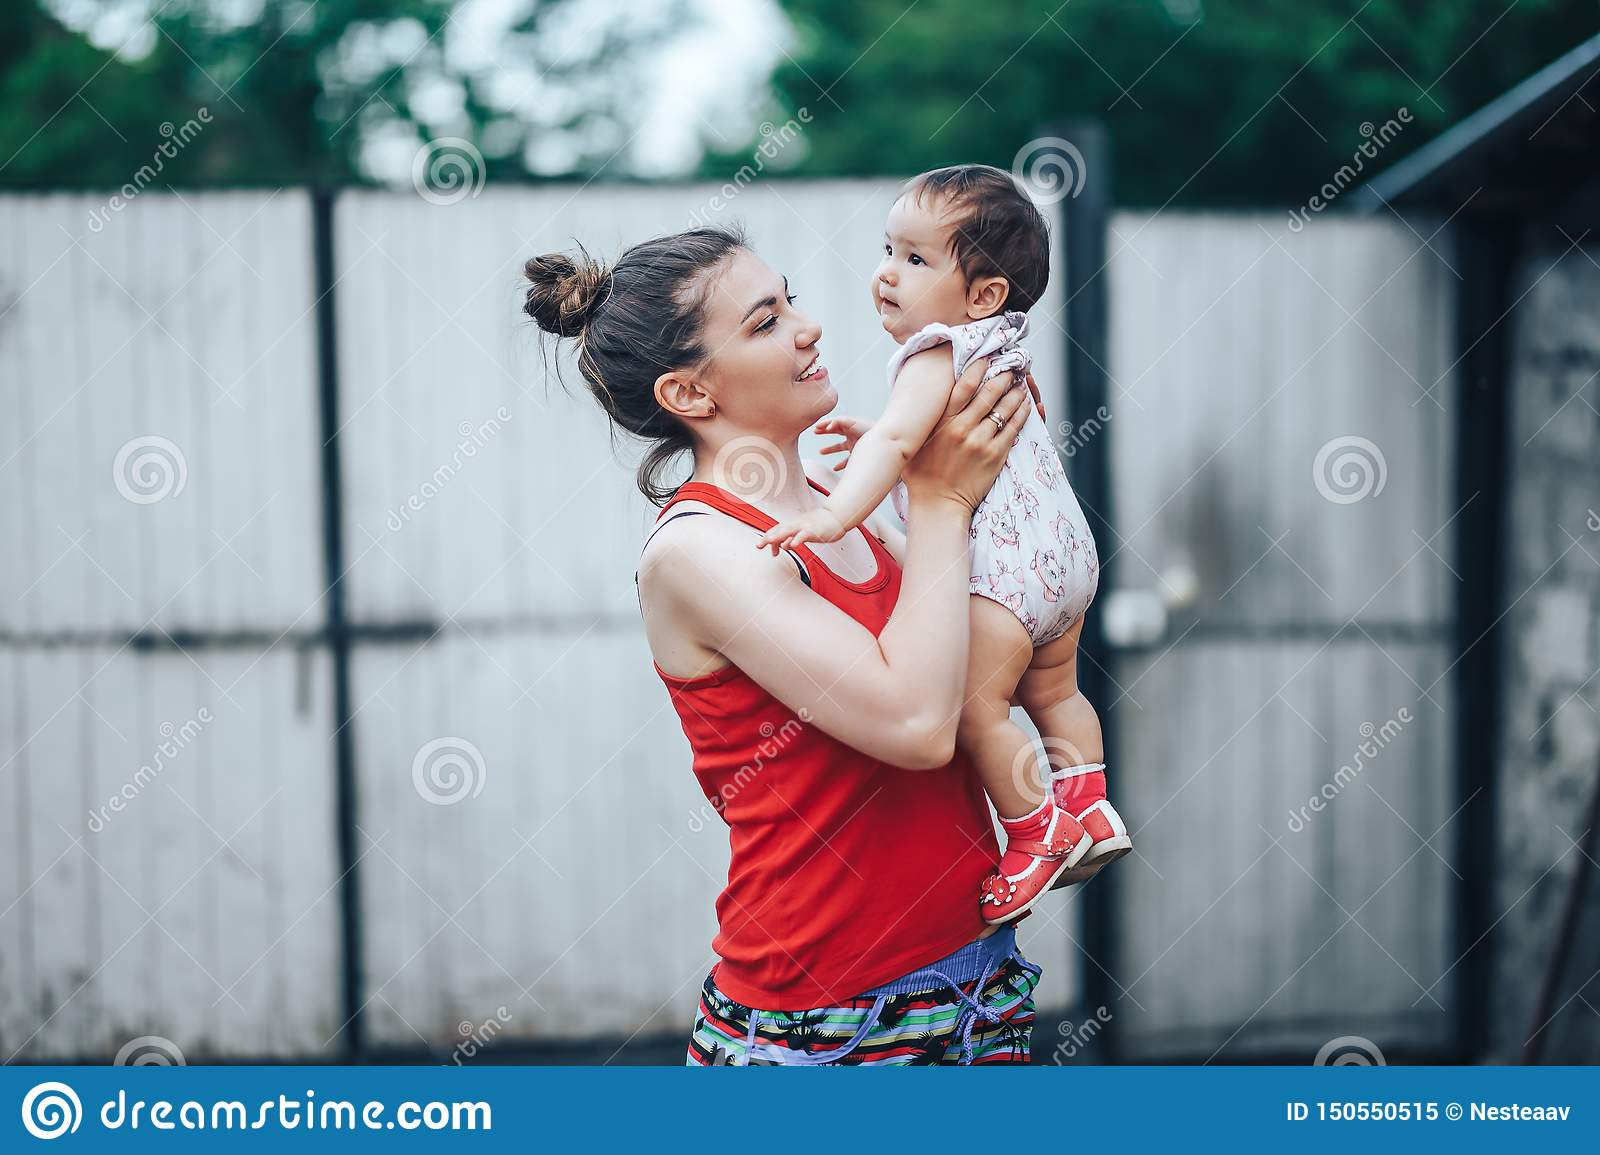 Beautiful Mother And Baby outdoors on the yard of house. Beauty Mum and her baby Child one year old playing in yard together. Mom